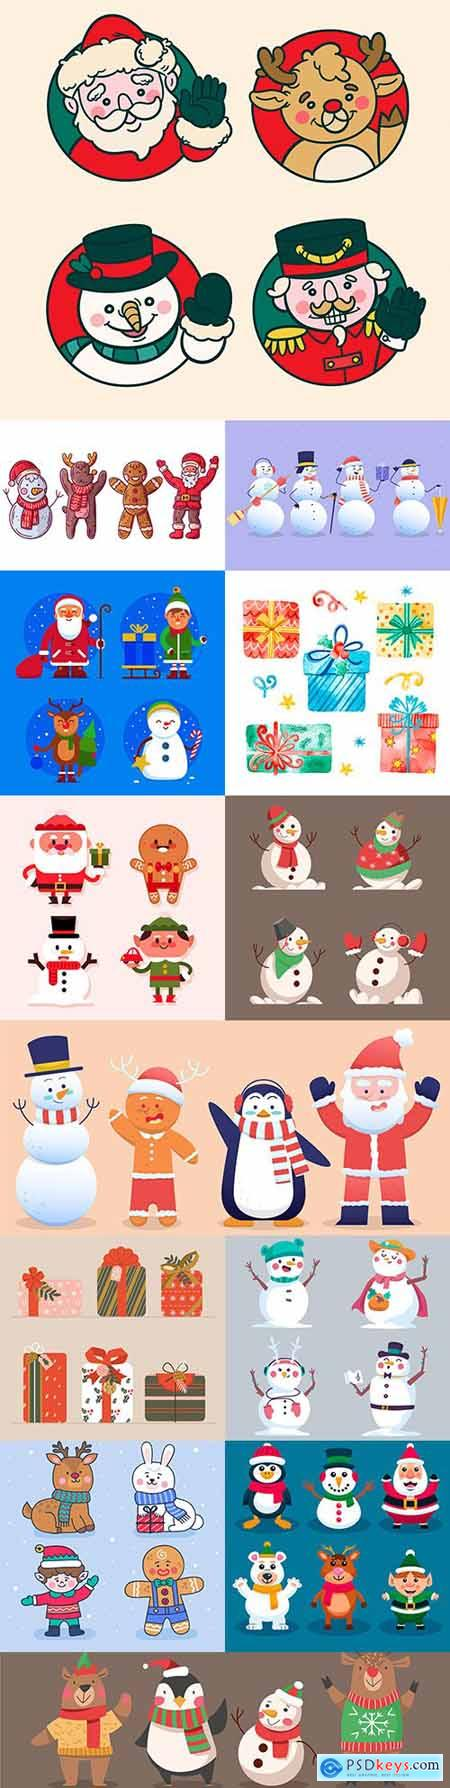 Christmas characters and gifts in flat design collection